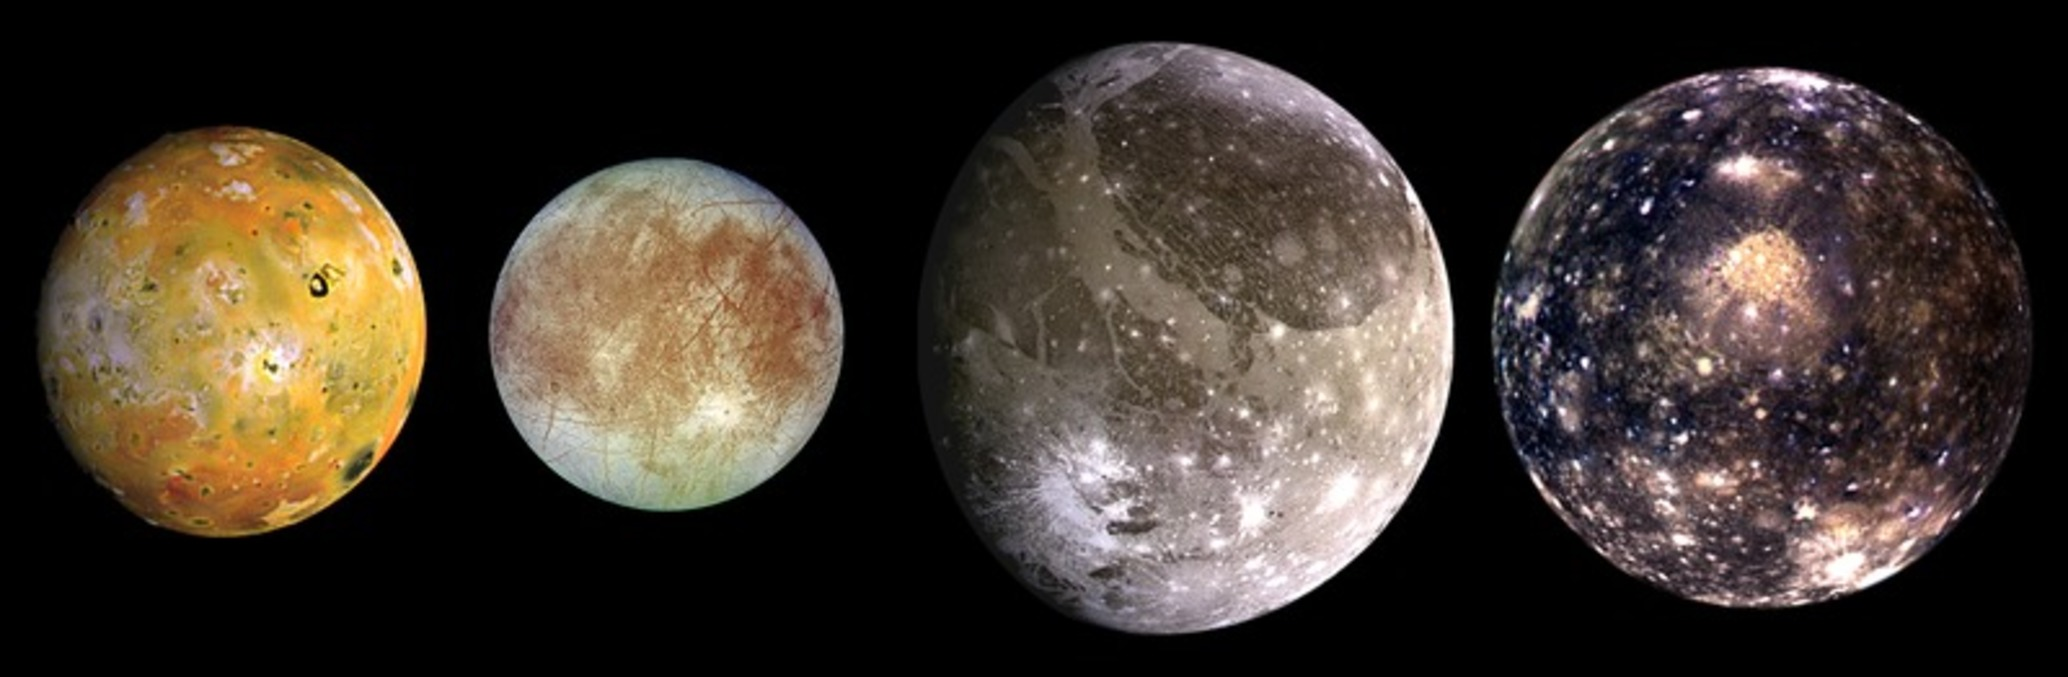 galilean moons orbits in days - photo #46